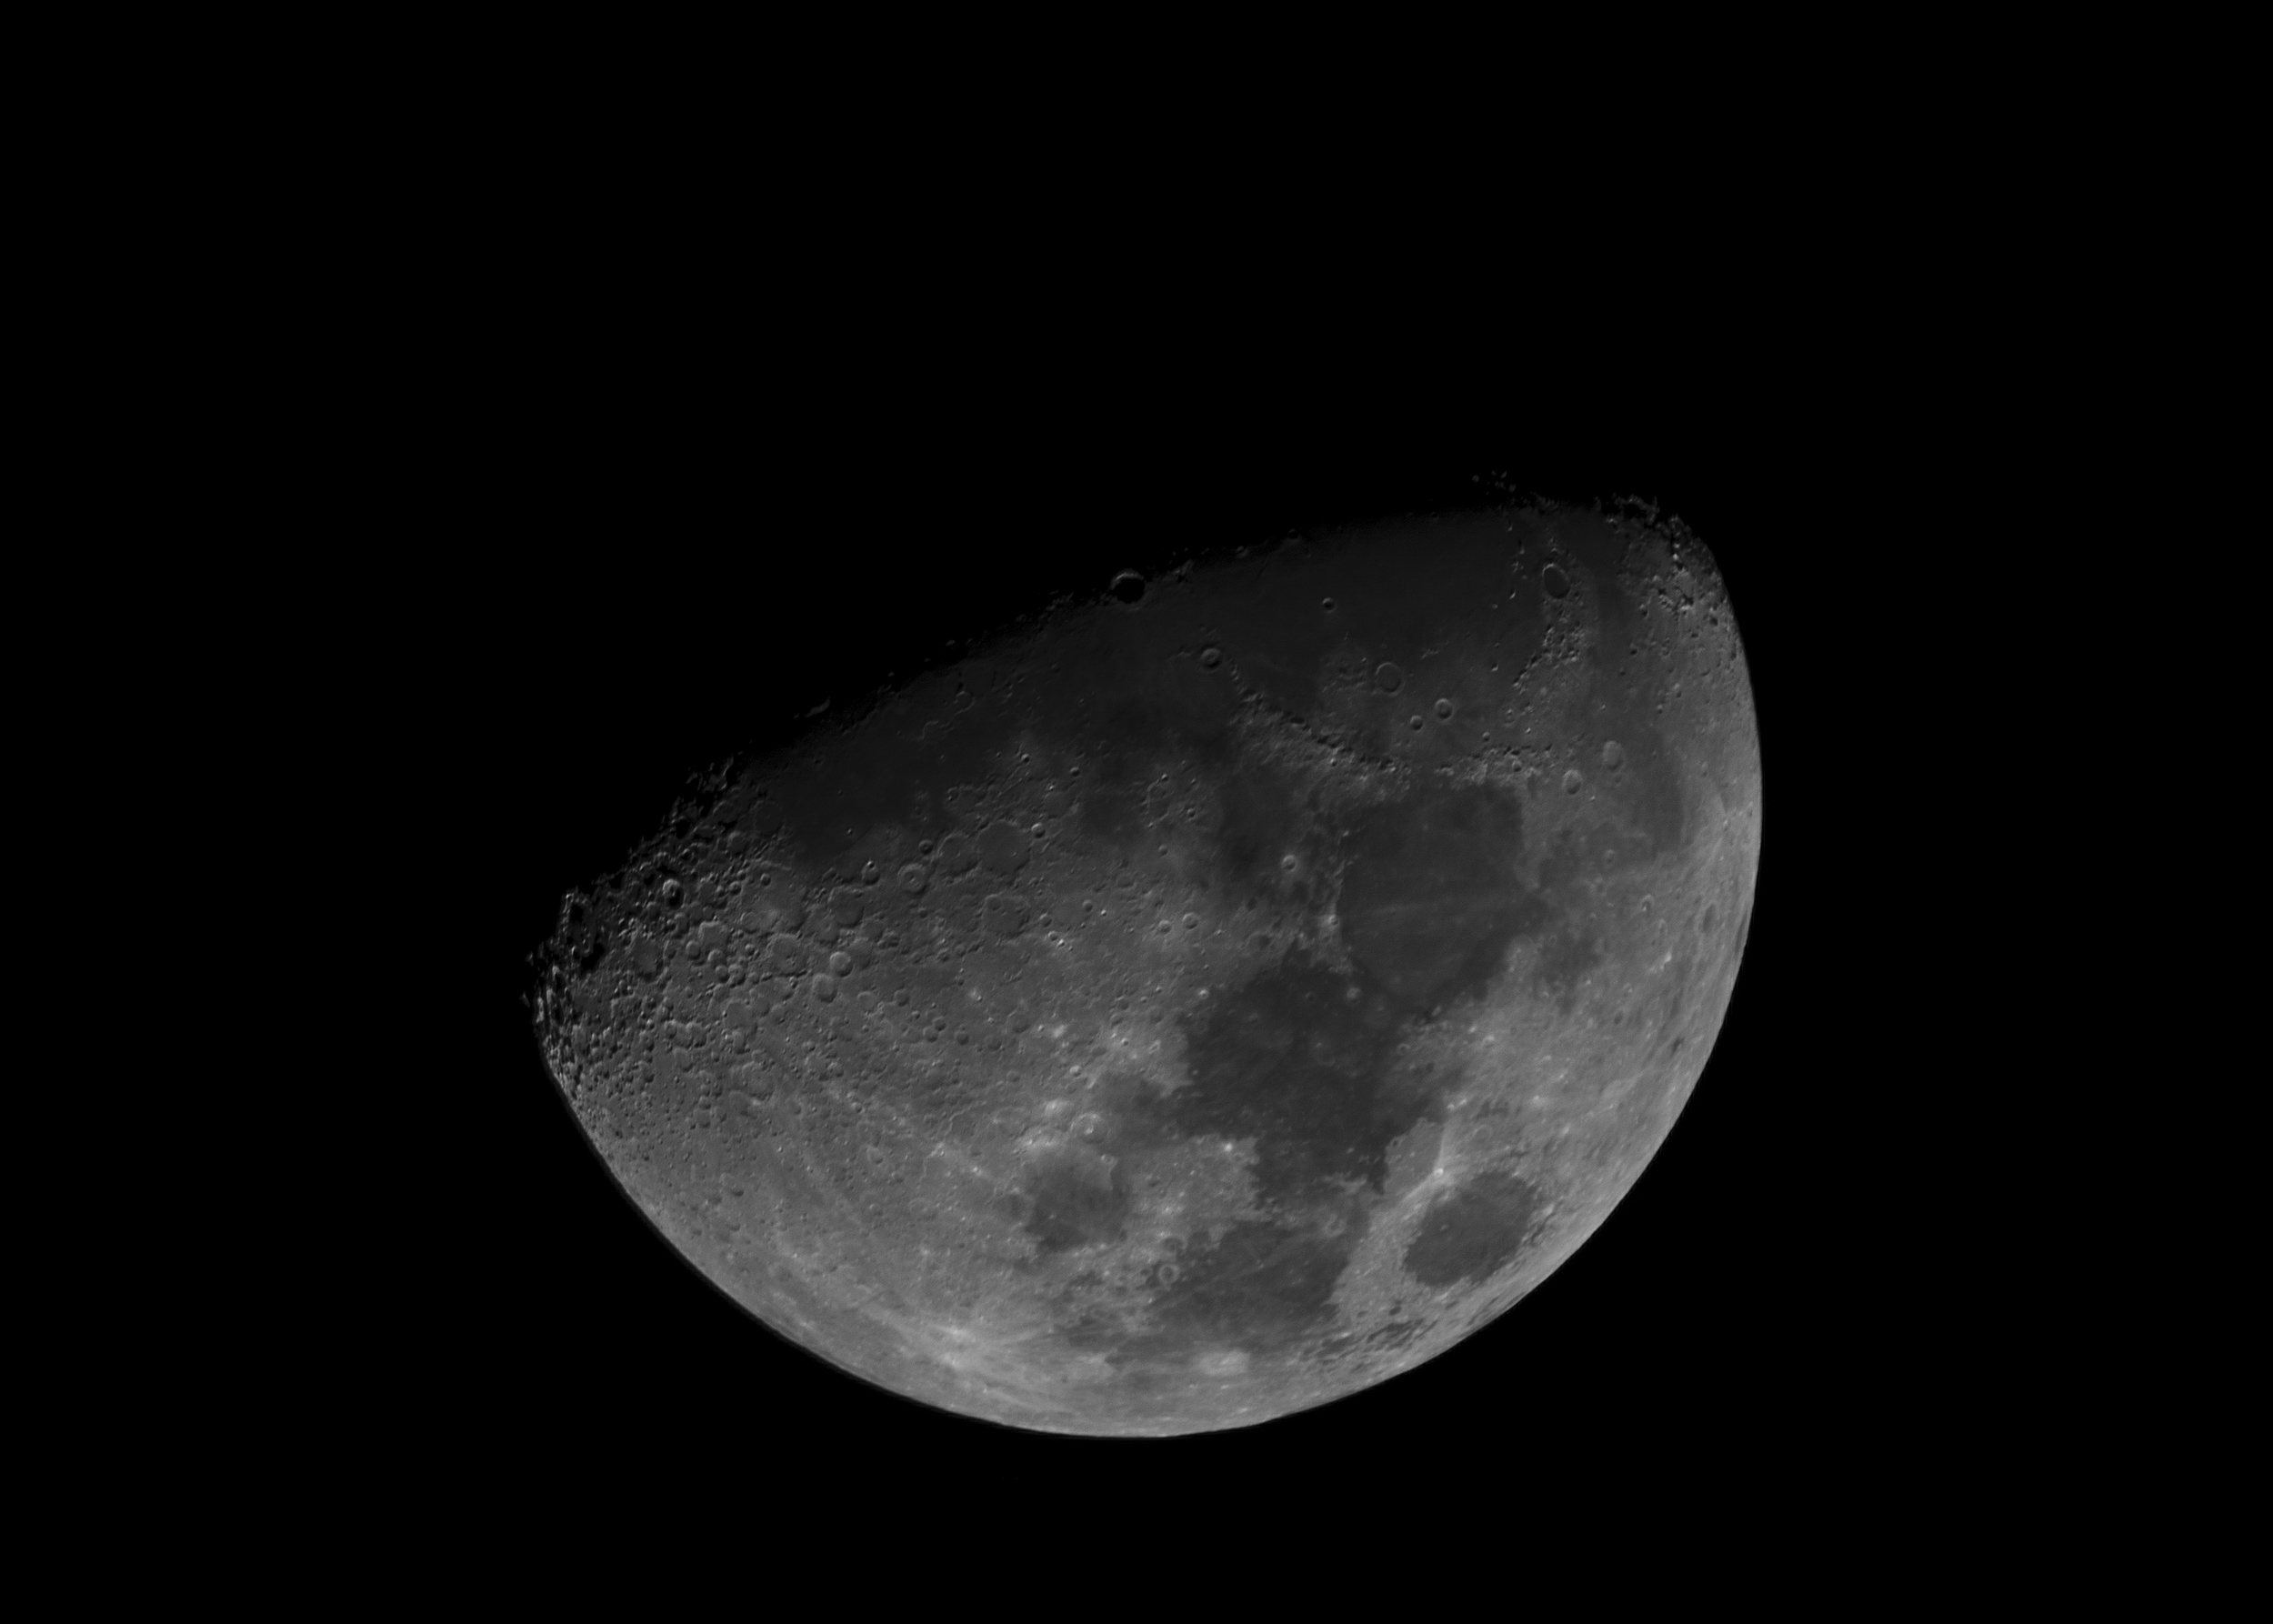 Waxing Moon 1219215  Nikon D750 ISO 250 1200mm f/8.0 1/250 sec. Stack of 35 images in RegiStax.